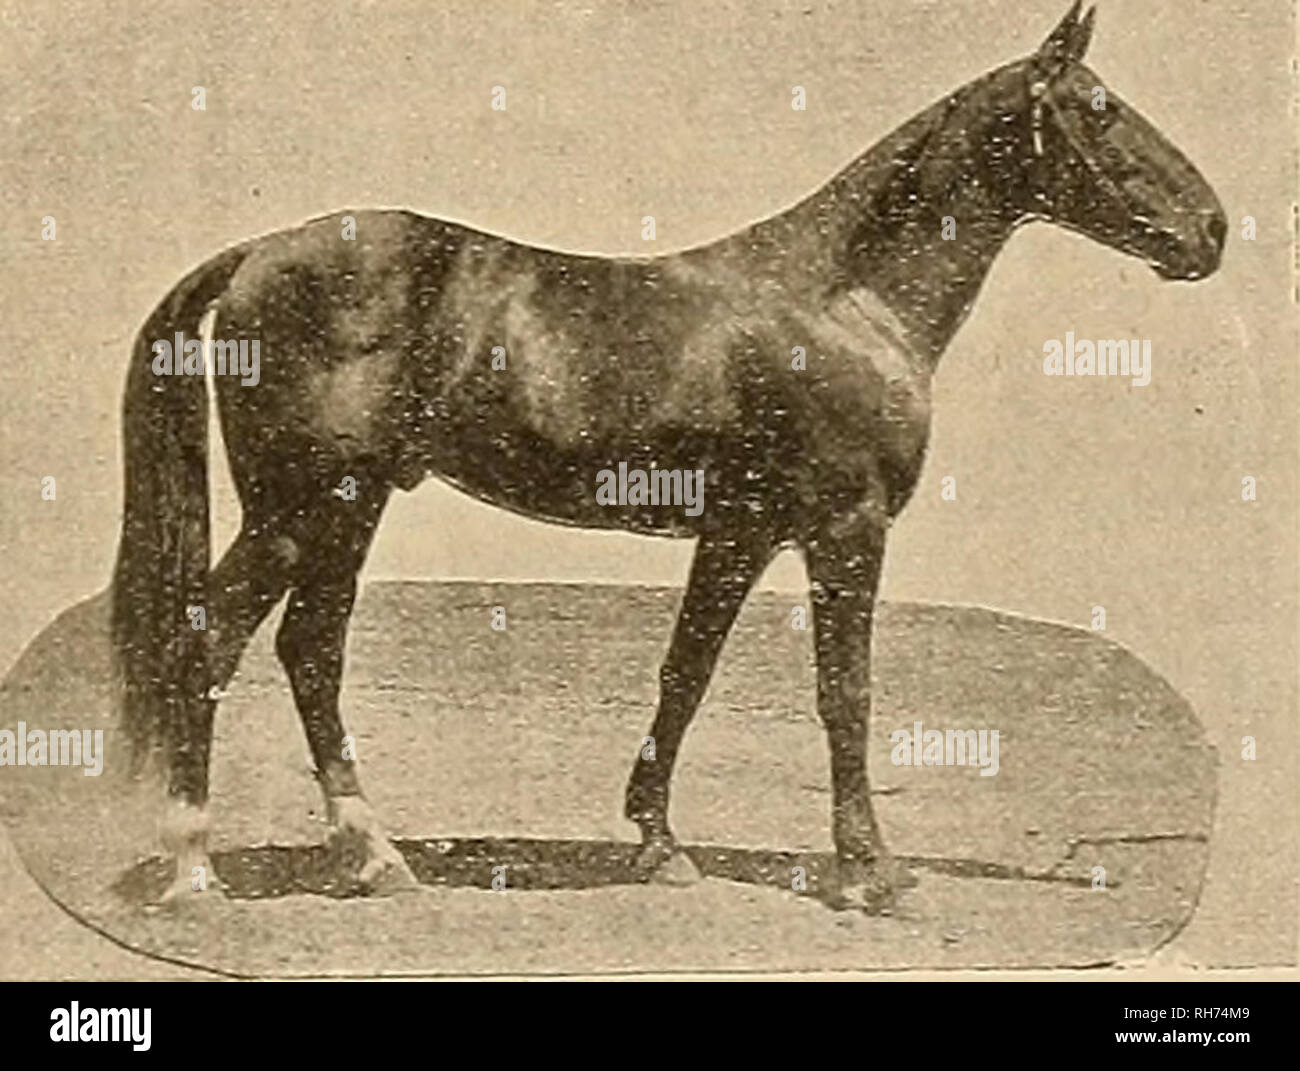 . Breeder and sportsman. Horses. October 7, 1905; ©Jte gzeebev cuts gtjxcurrsman 2.09V» and 2:10%. Lady Mowry was fifth in the sum- nary of this event, in which there were ten start- rs. Dan Patch paced a great mile in an effort to beat his record. He just equalled his previous mark of 1:56, the quarters being- 0:29%, 0:58%, 1:27%. 1:56. the Lxington track is not considered as fast as the track at Memphis, where he made his record last year, horsemen think he is a faster horse this season than ever before in his life. The summaries of the race follow: Pacing, futurity, for three-year-olds, p - Stock Image